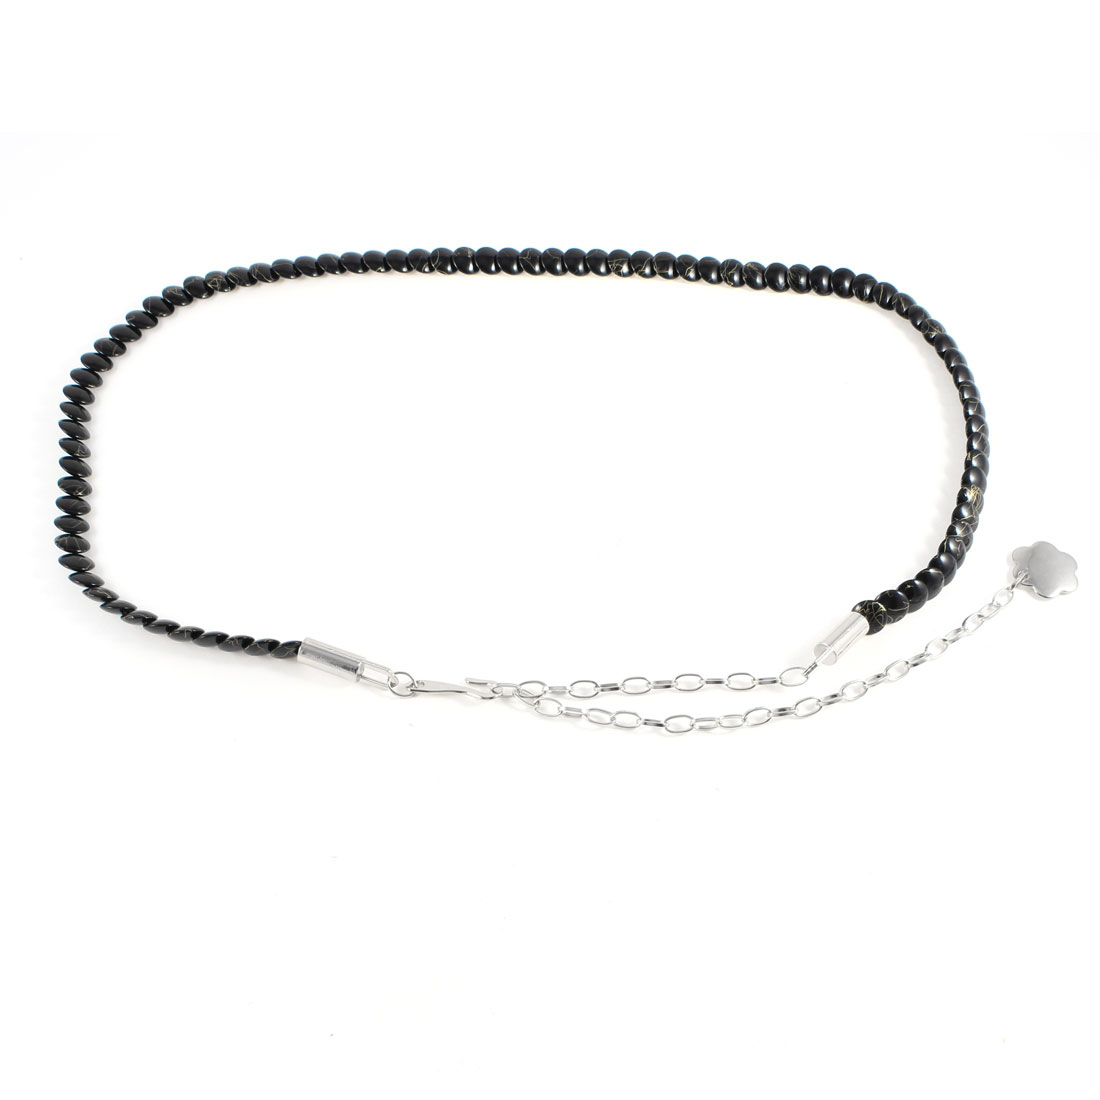 Silver Tone Metal Hook Buckle Black Adjustable Thin Waist Chain Belt for Woman